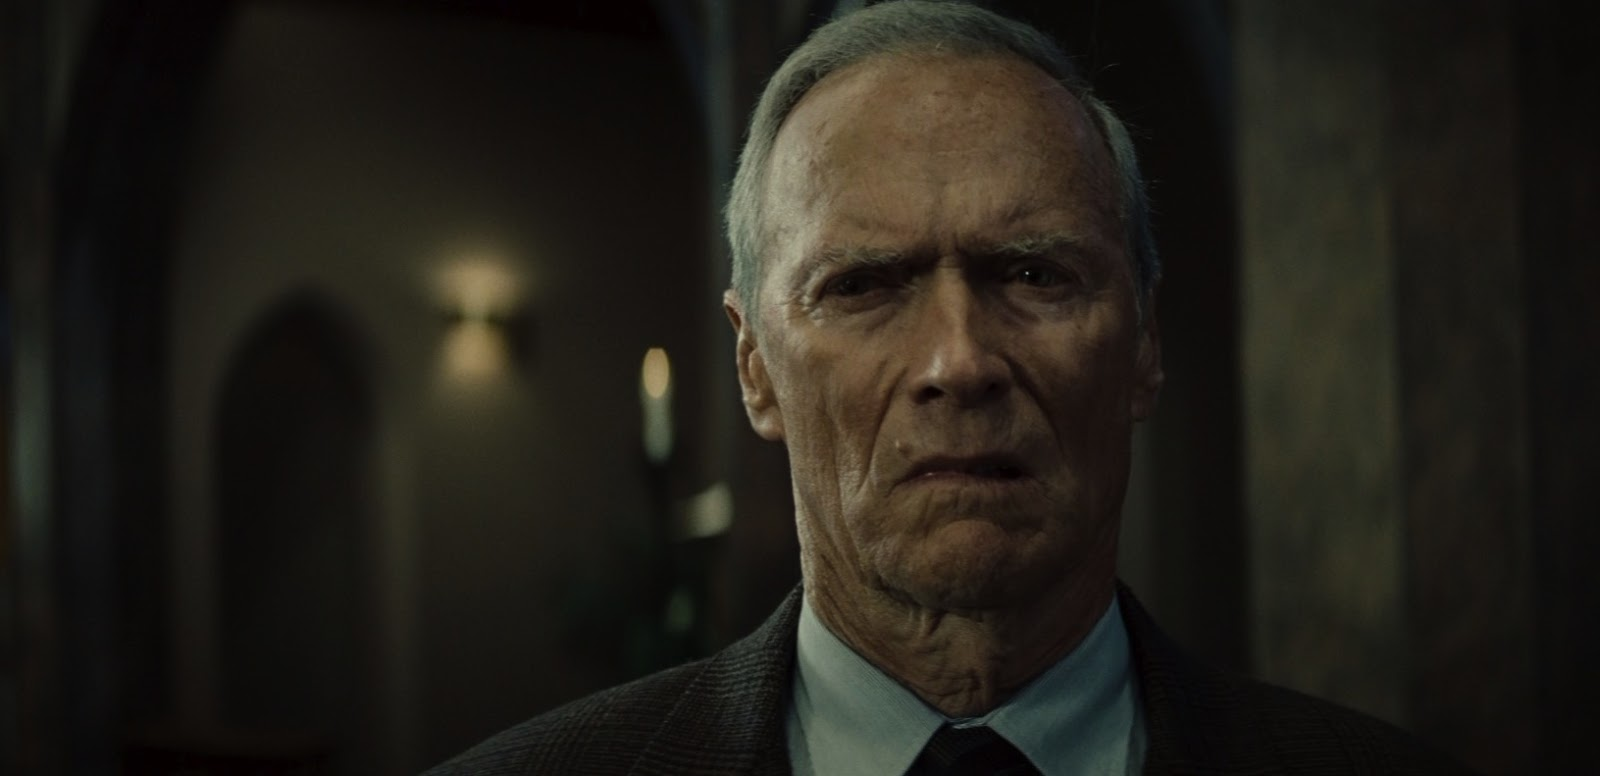 and so it begins the directors clint eastwood i ve always considered gran torino clint eastwood s sawn song the film s protagonist walk kowalski is not unlike the characters that made eastwood famous